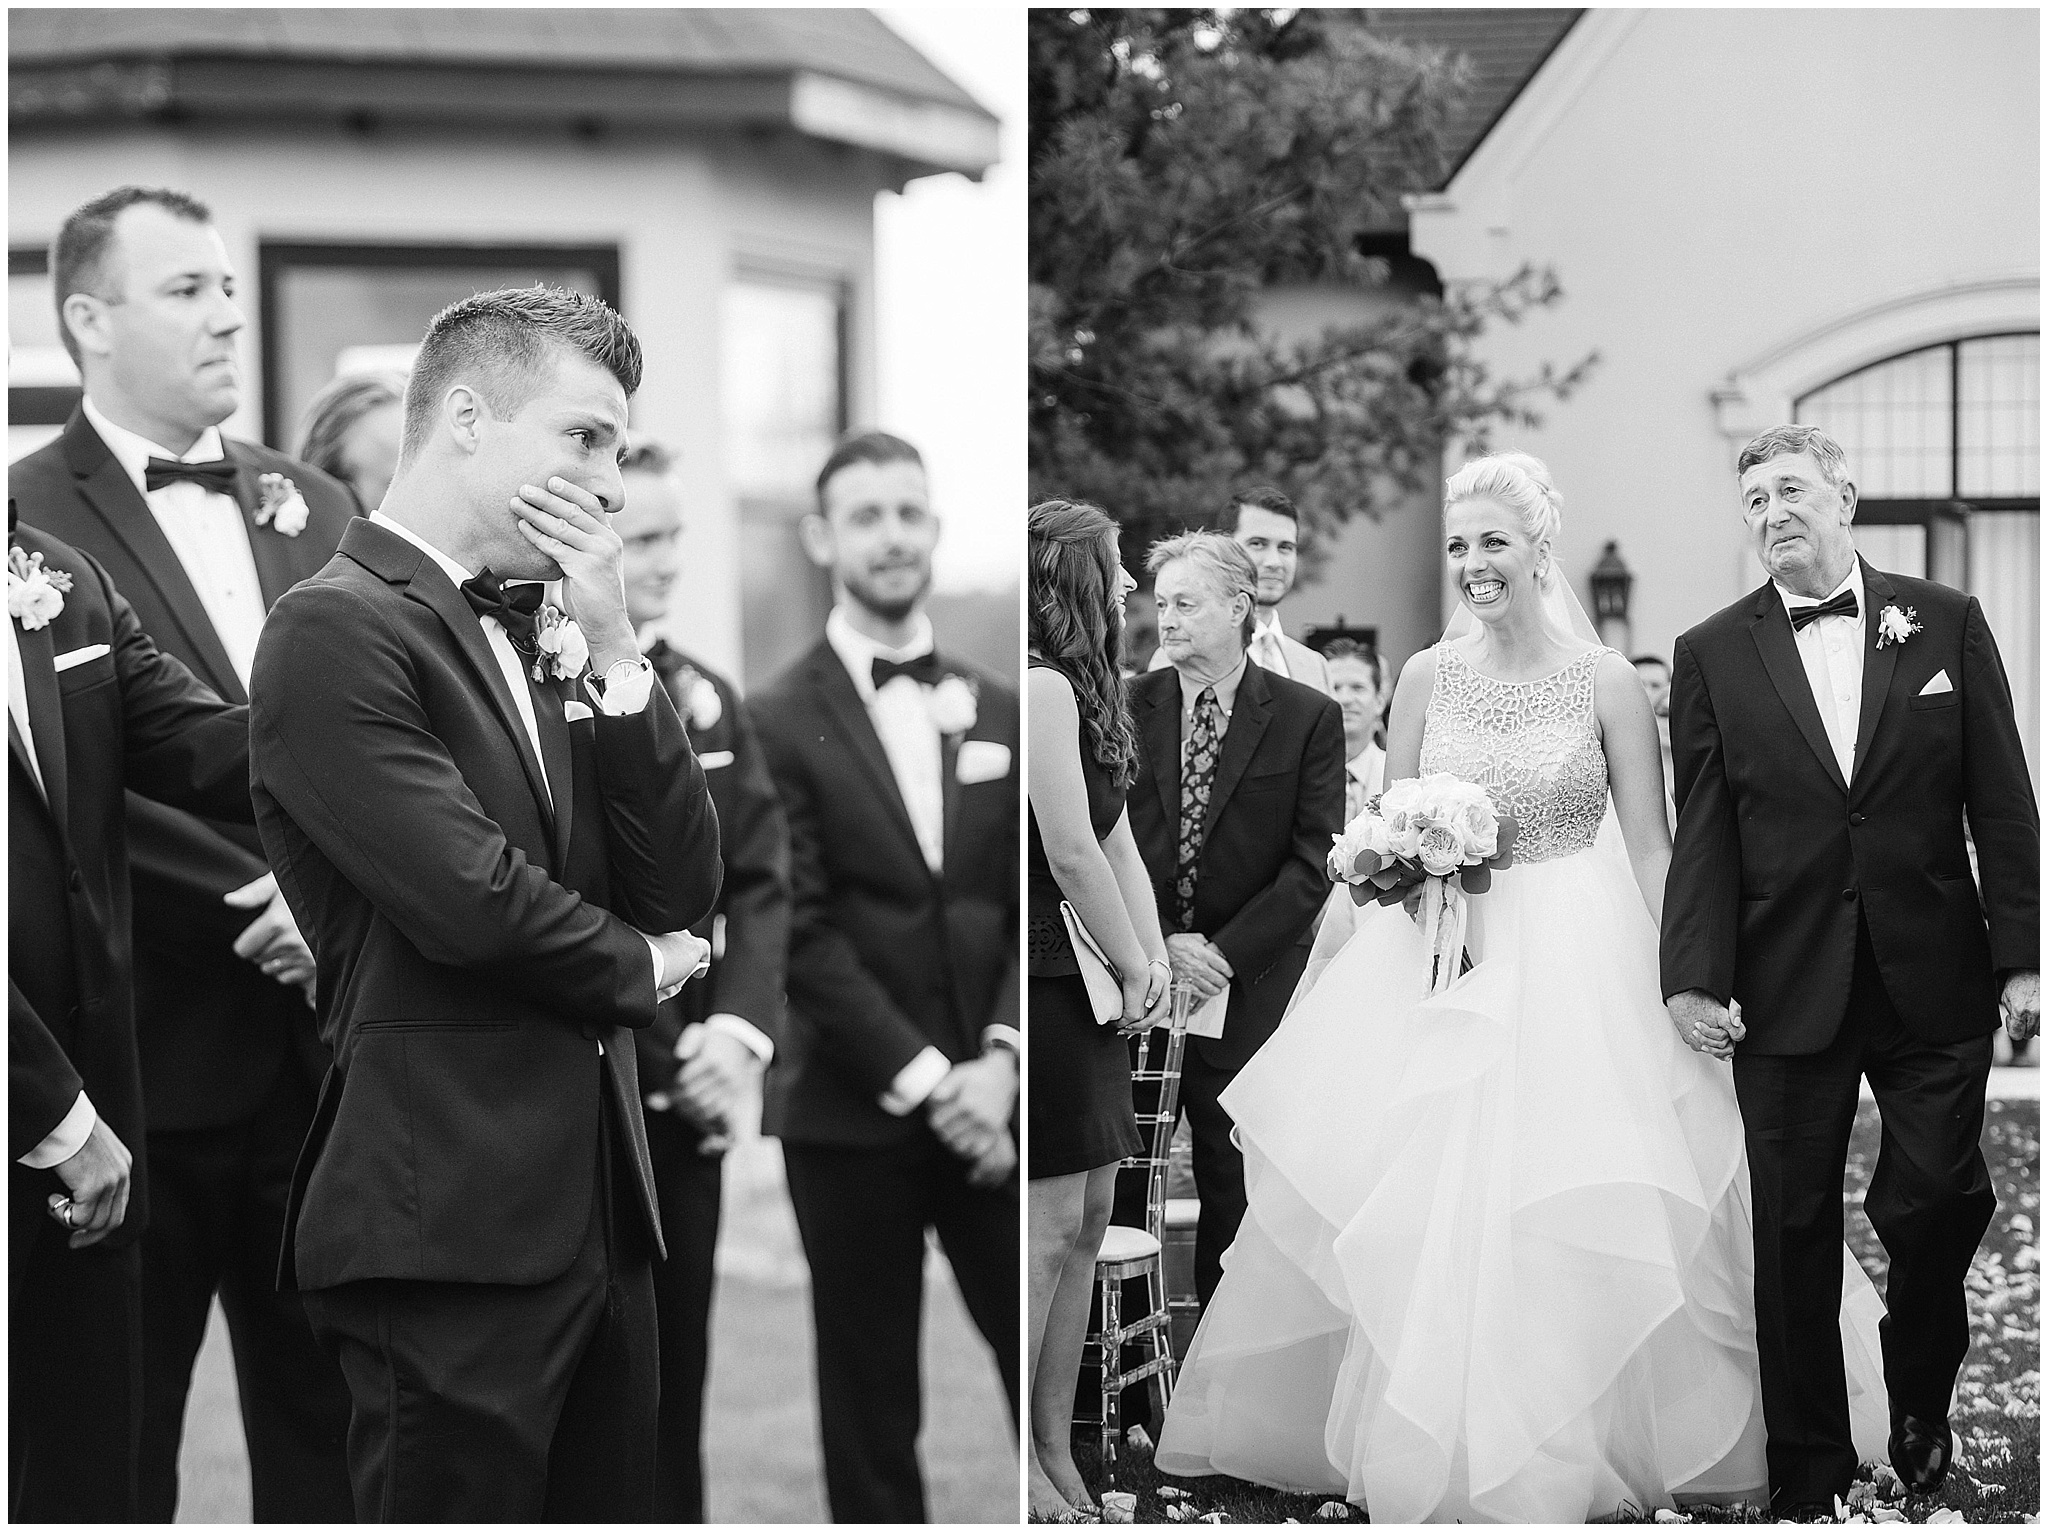 Tearful wedding ceremony photographed by Jenn Kavanagh Photography